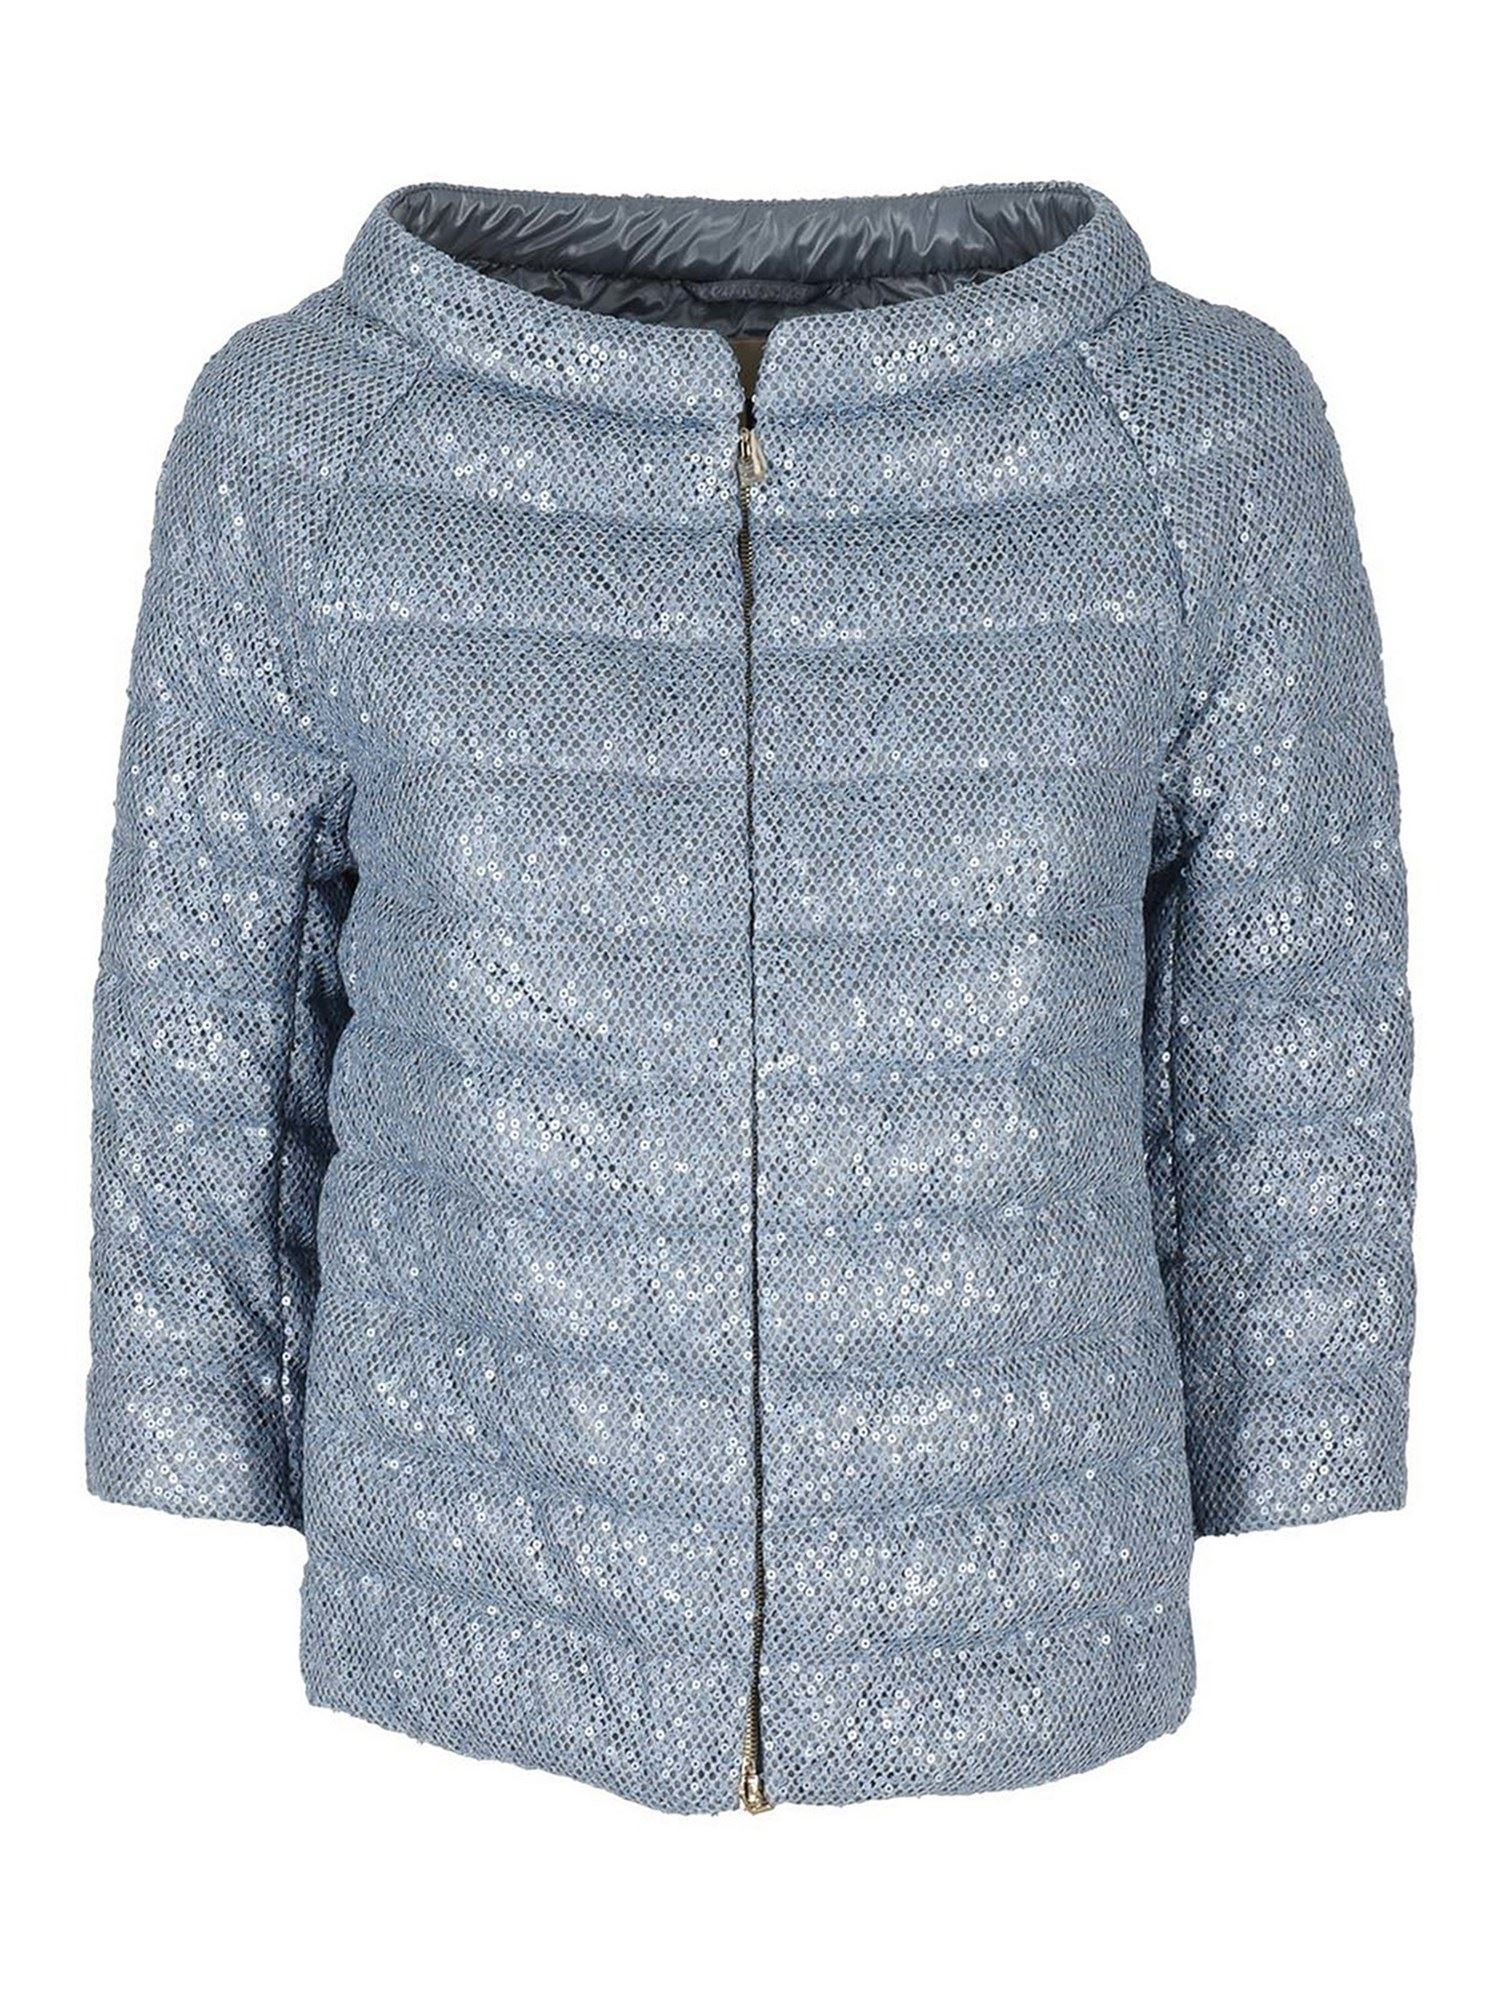 Herno Downs SEQUINS EMBELLISHED PUFFER JACKET IN LIGHT BLUE